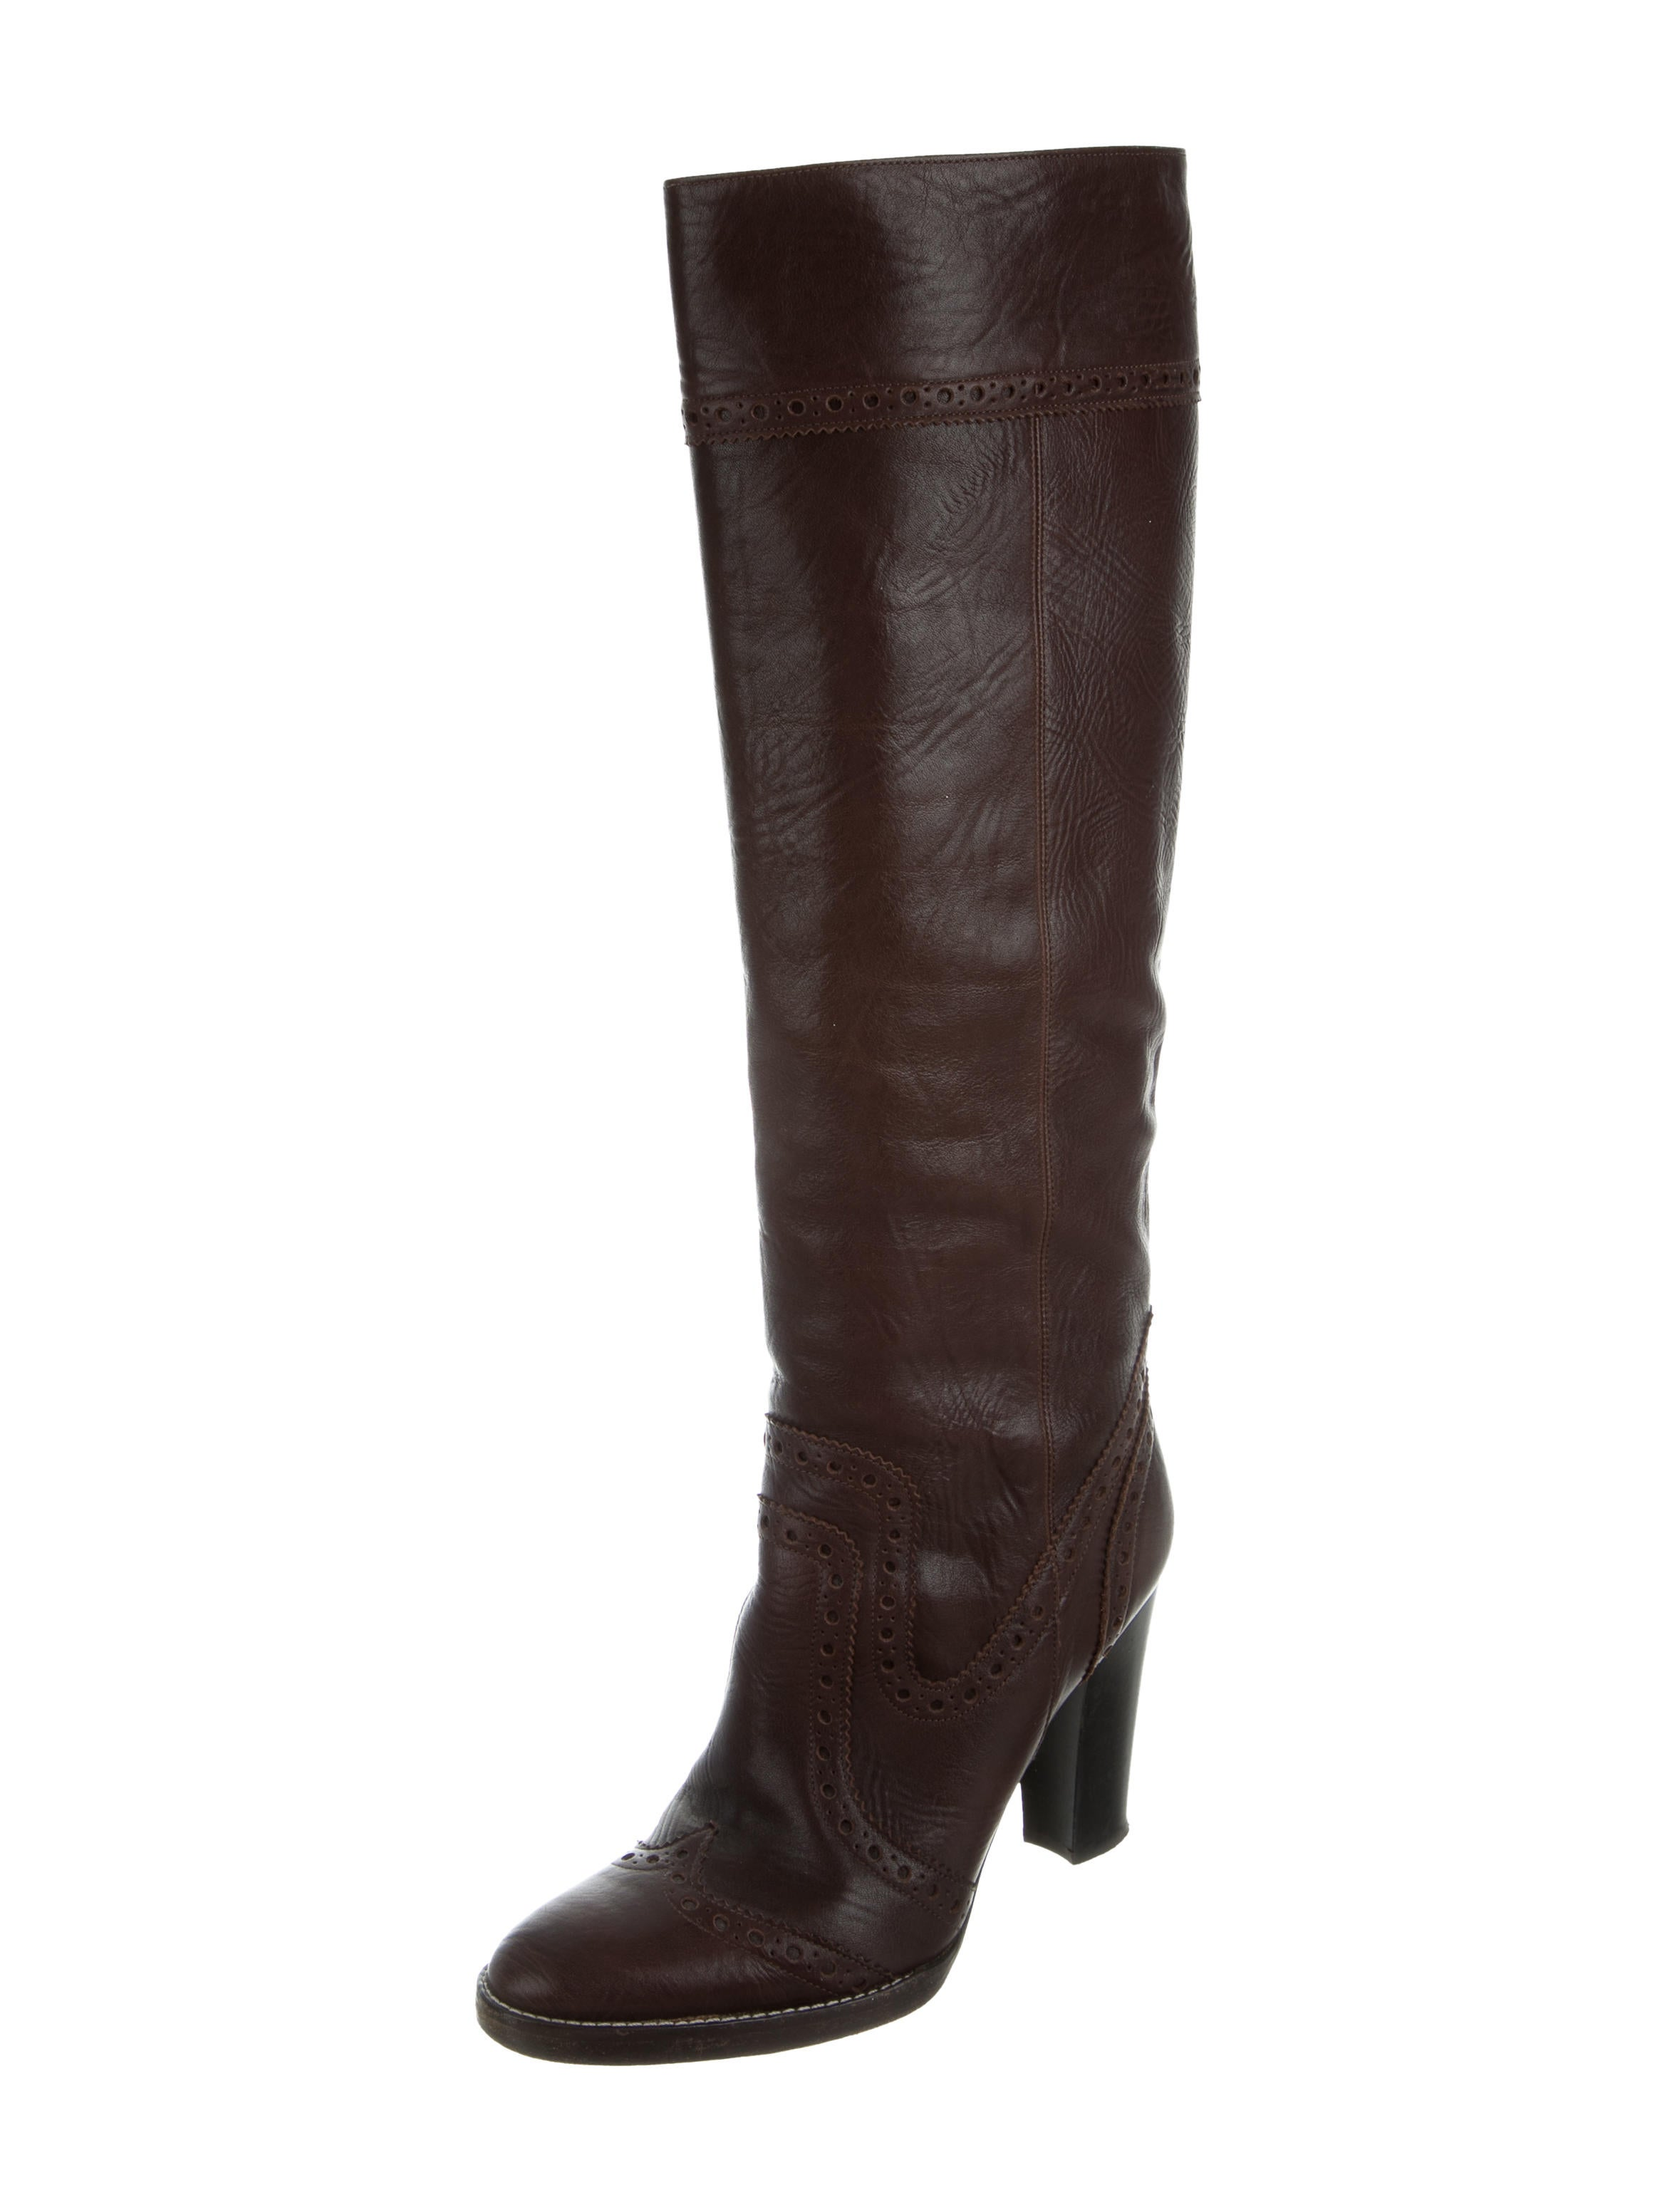 michael kors leather knee high boots shoes mic48333